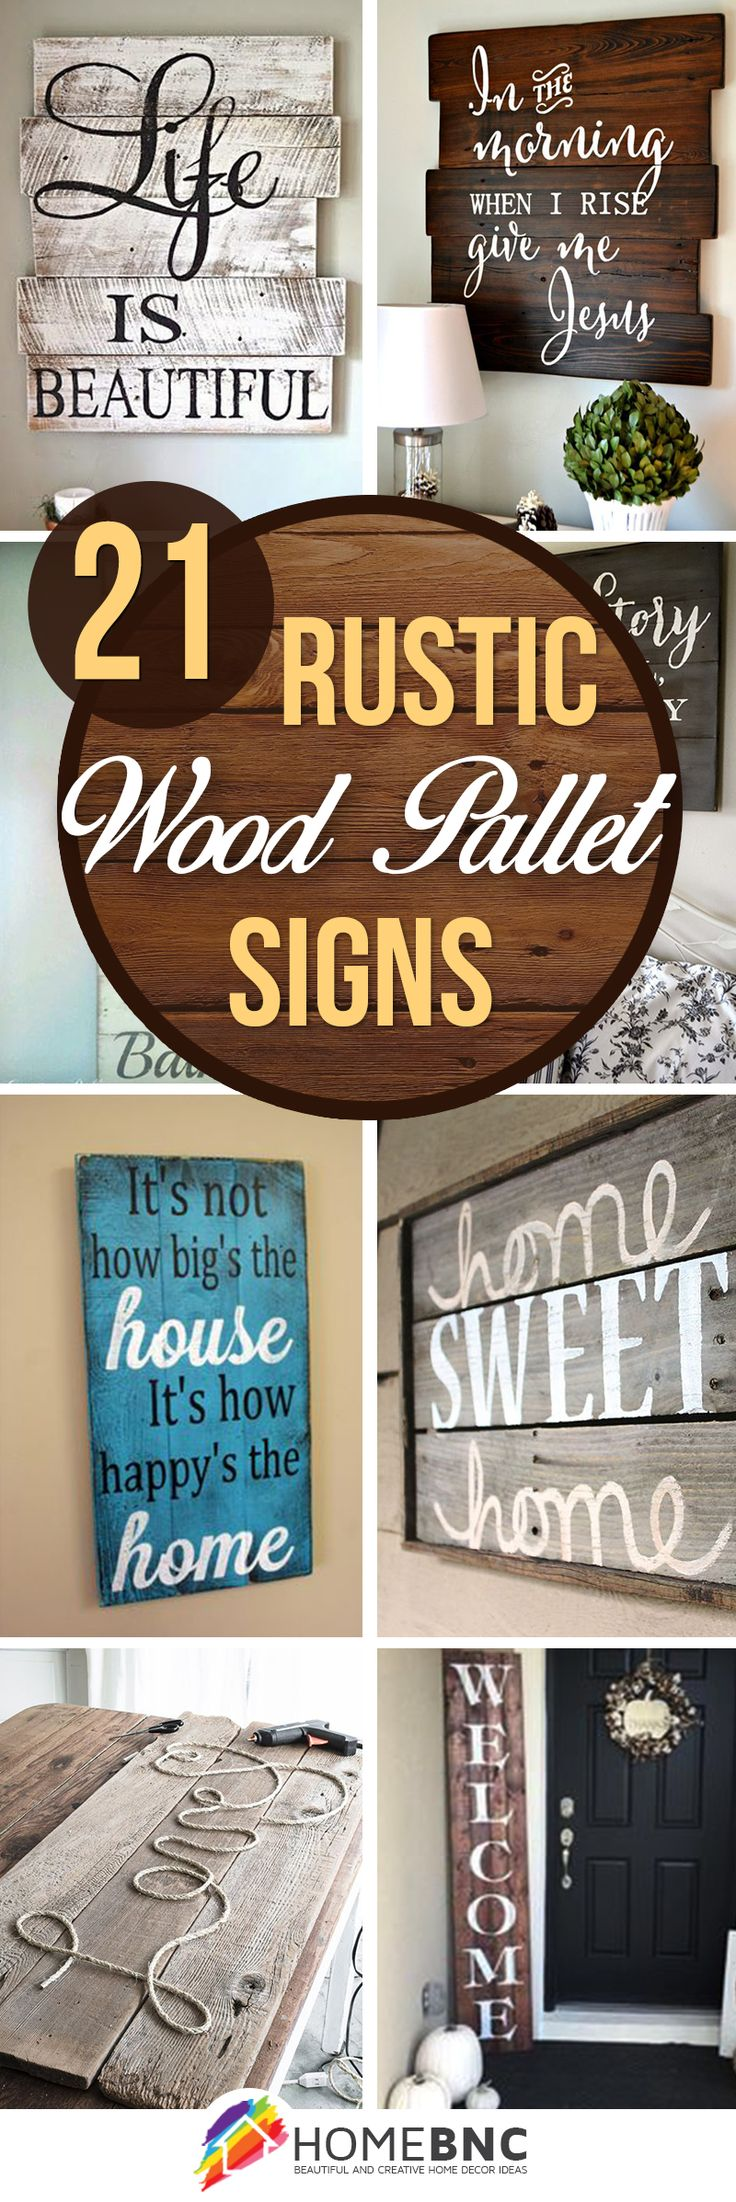 Best 25+ Wooden pallet projects ideas on Pinterest | Wooden pallet ...